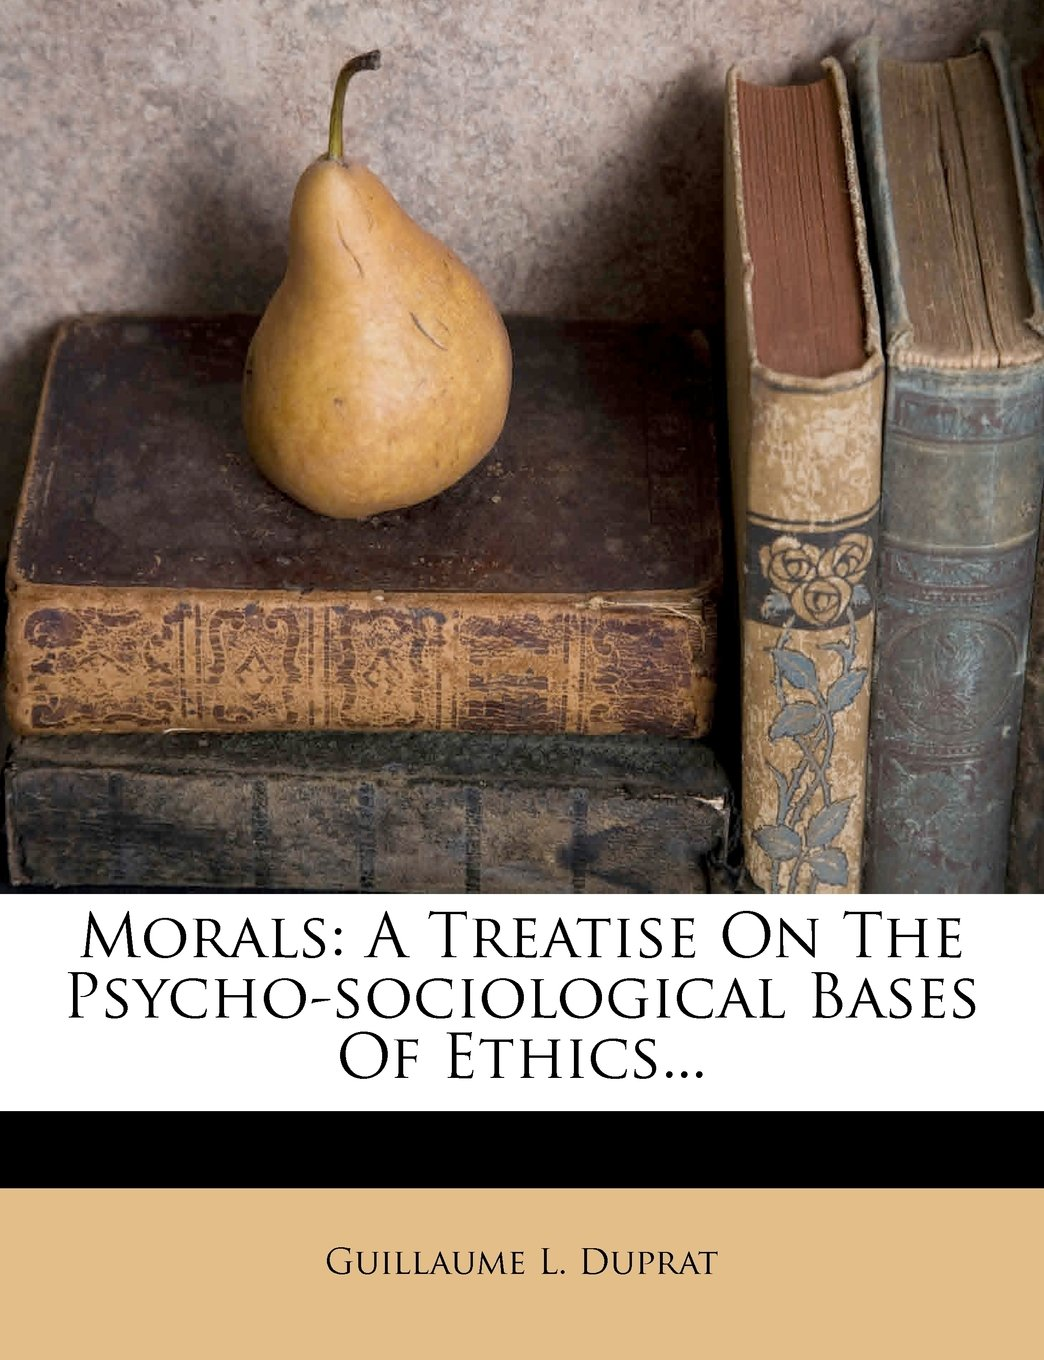 Morals: A Treatise On The Psycho-sociological Bases Of Ethics... pdf